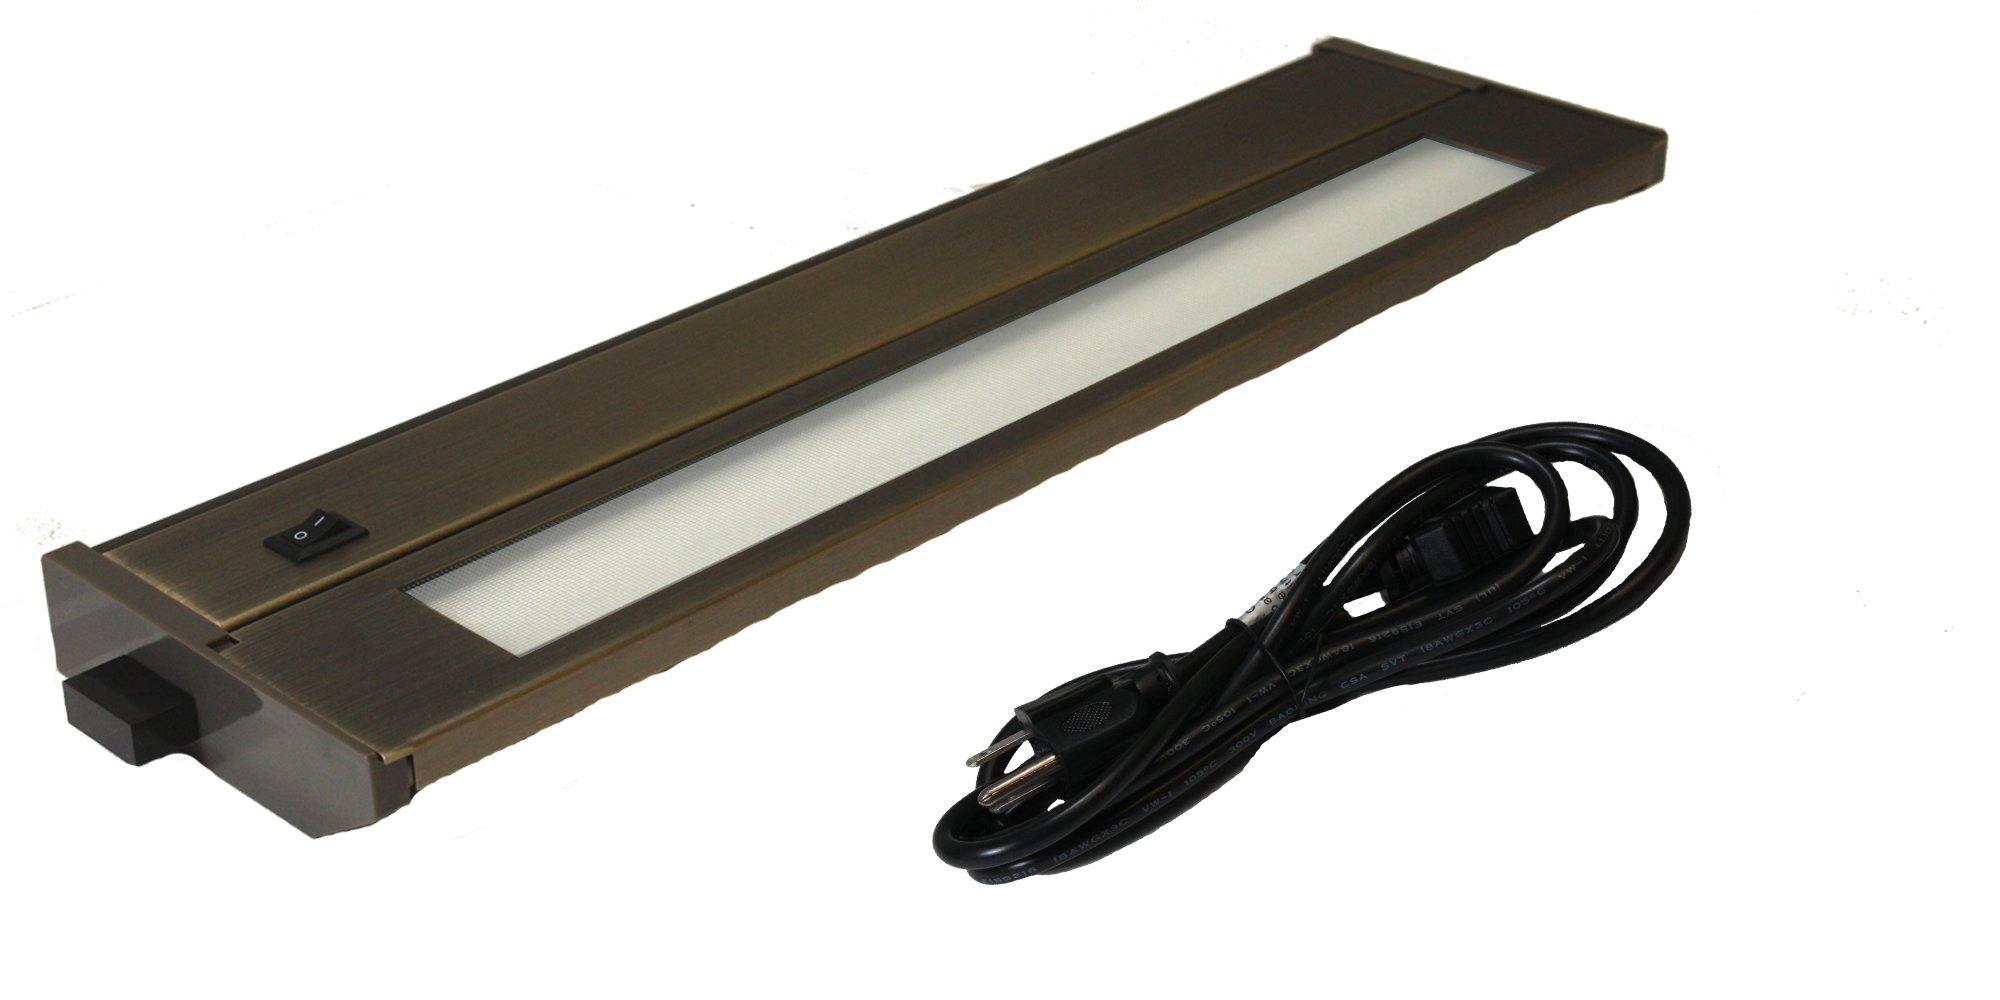 American Lighting 043X-2P-BR Xenon Under Cabinet Lighting, 14-Inch, 40-Watt Lamp, Hi/Low/Off Switch, 120-volt, 6-Foot Cord with Plug, Bronze by American Lighting (Image #1)